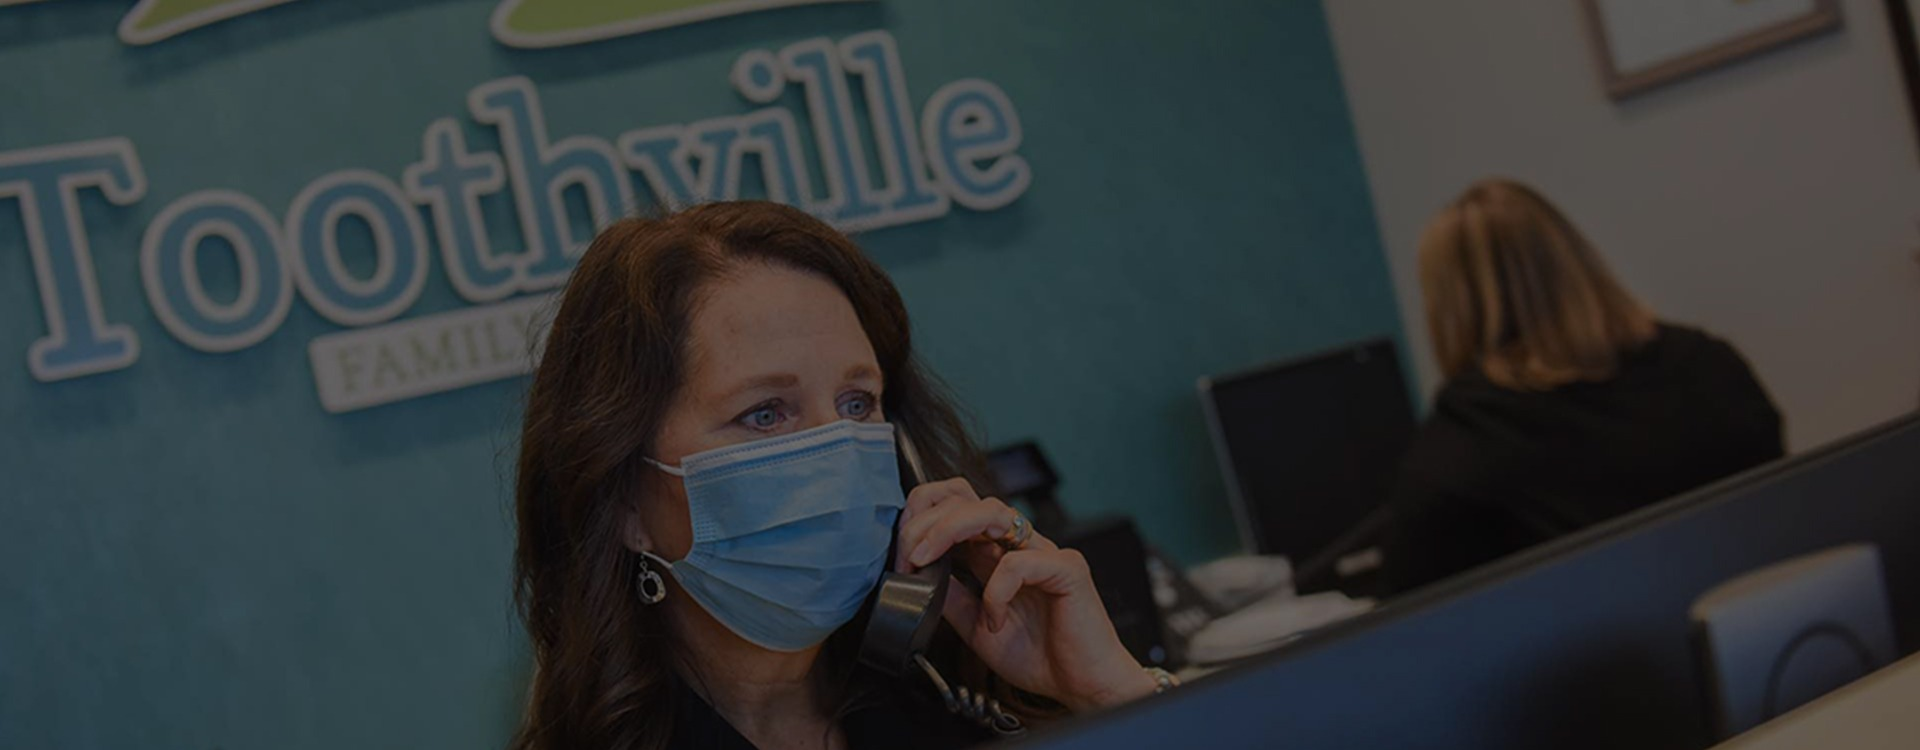 Helpful Team | Toothville Family Dentistry | NW Calgary | General Dentist